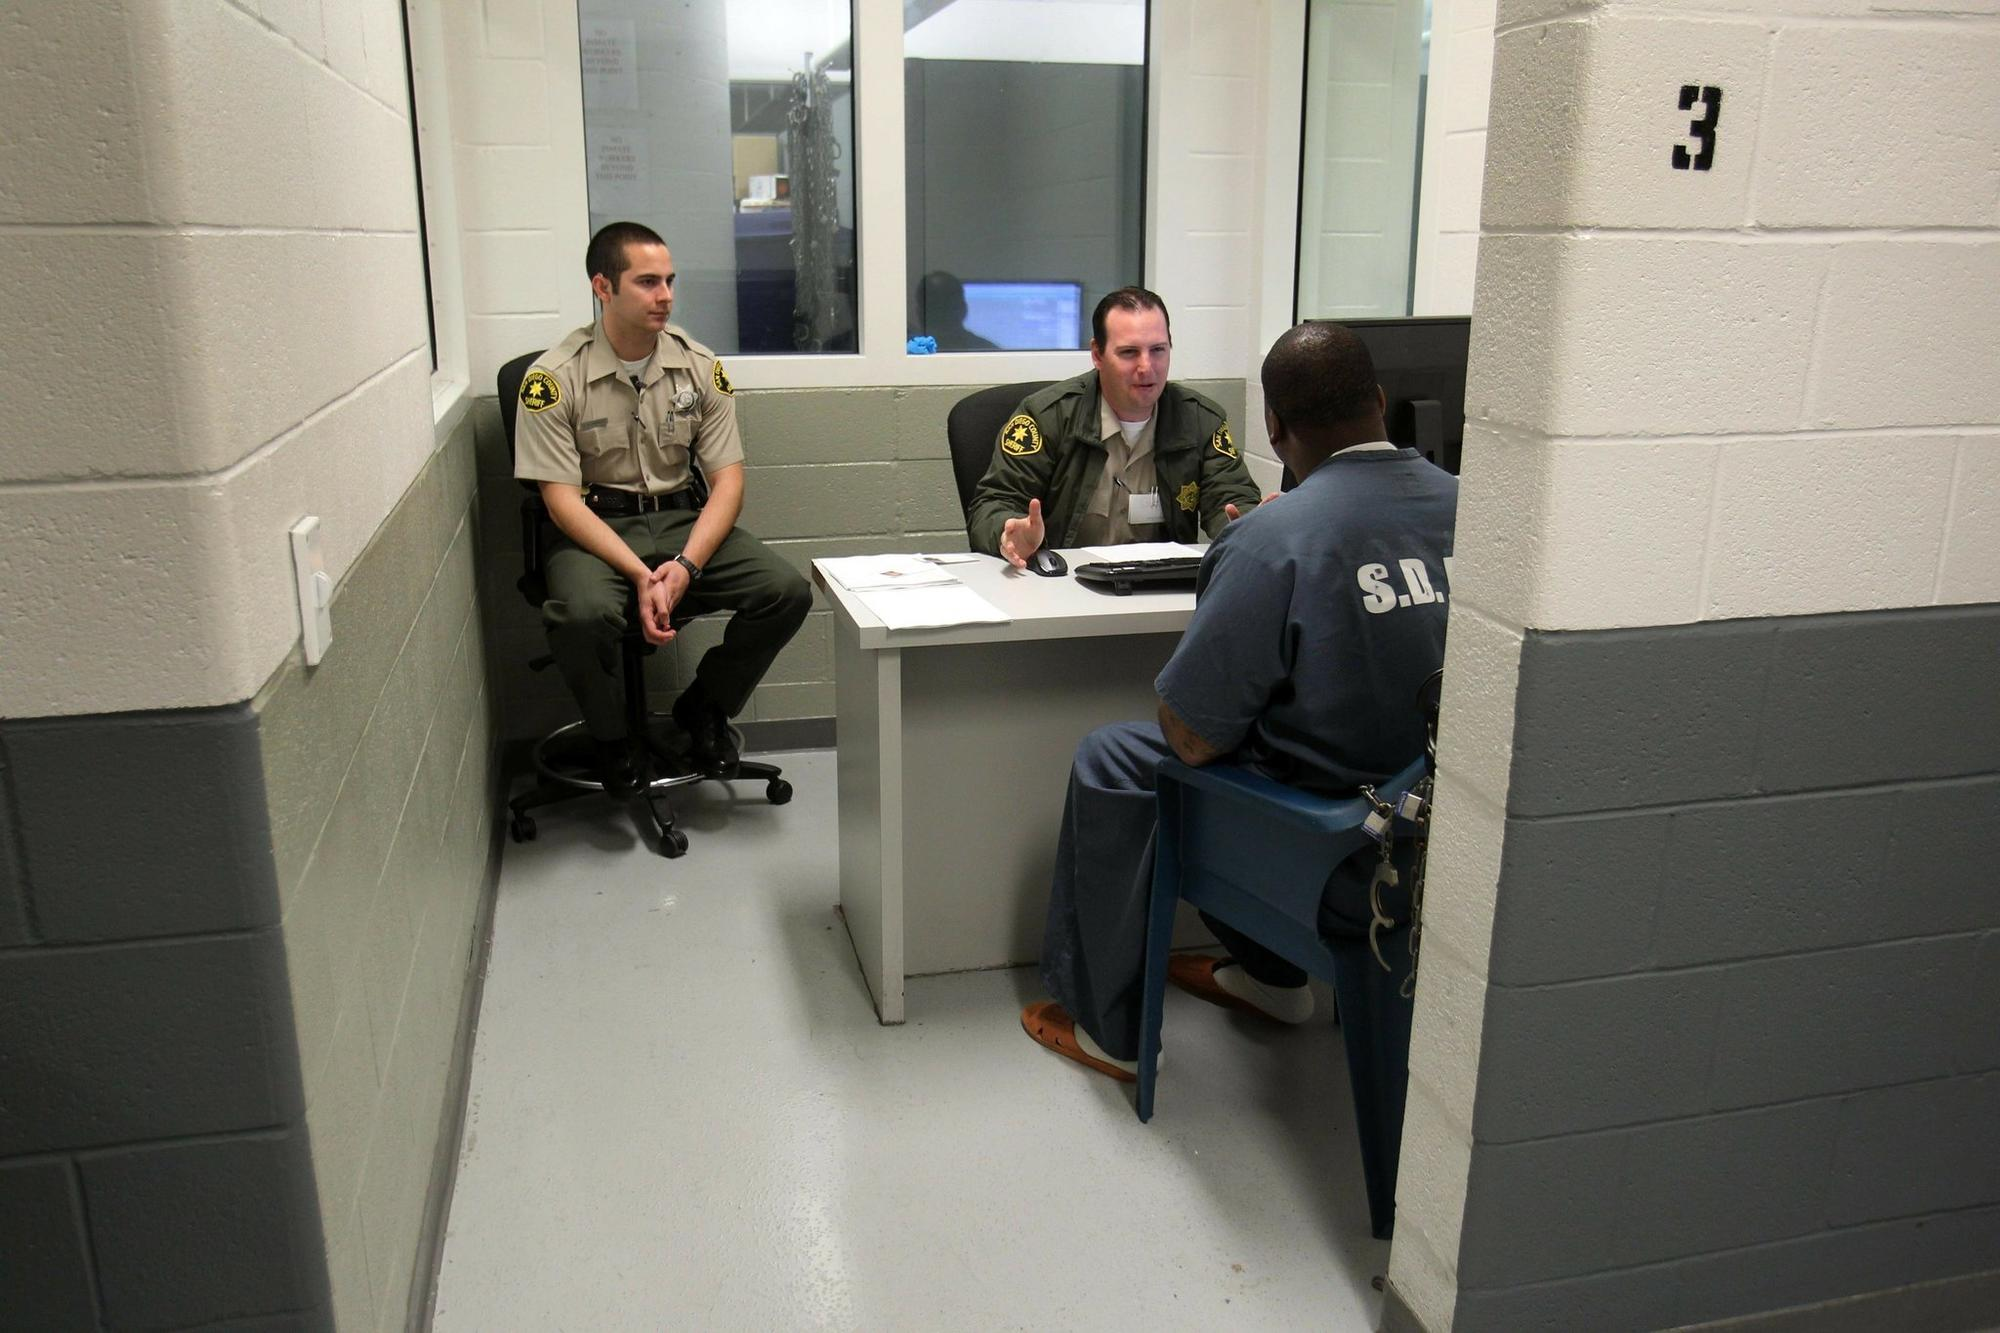 County sheriff's deputies have more inmates to monitor under a state law that gave local authorities more responsibility for lower-level criminals to ease crowding in state priso